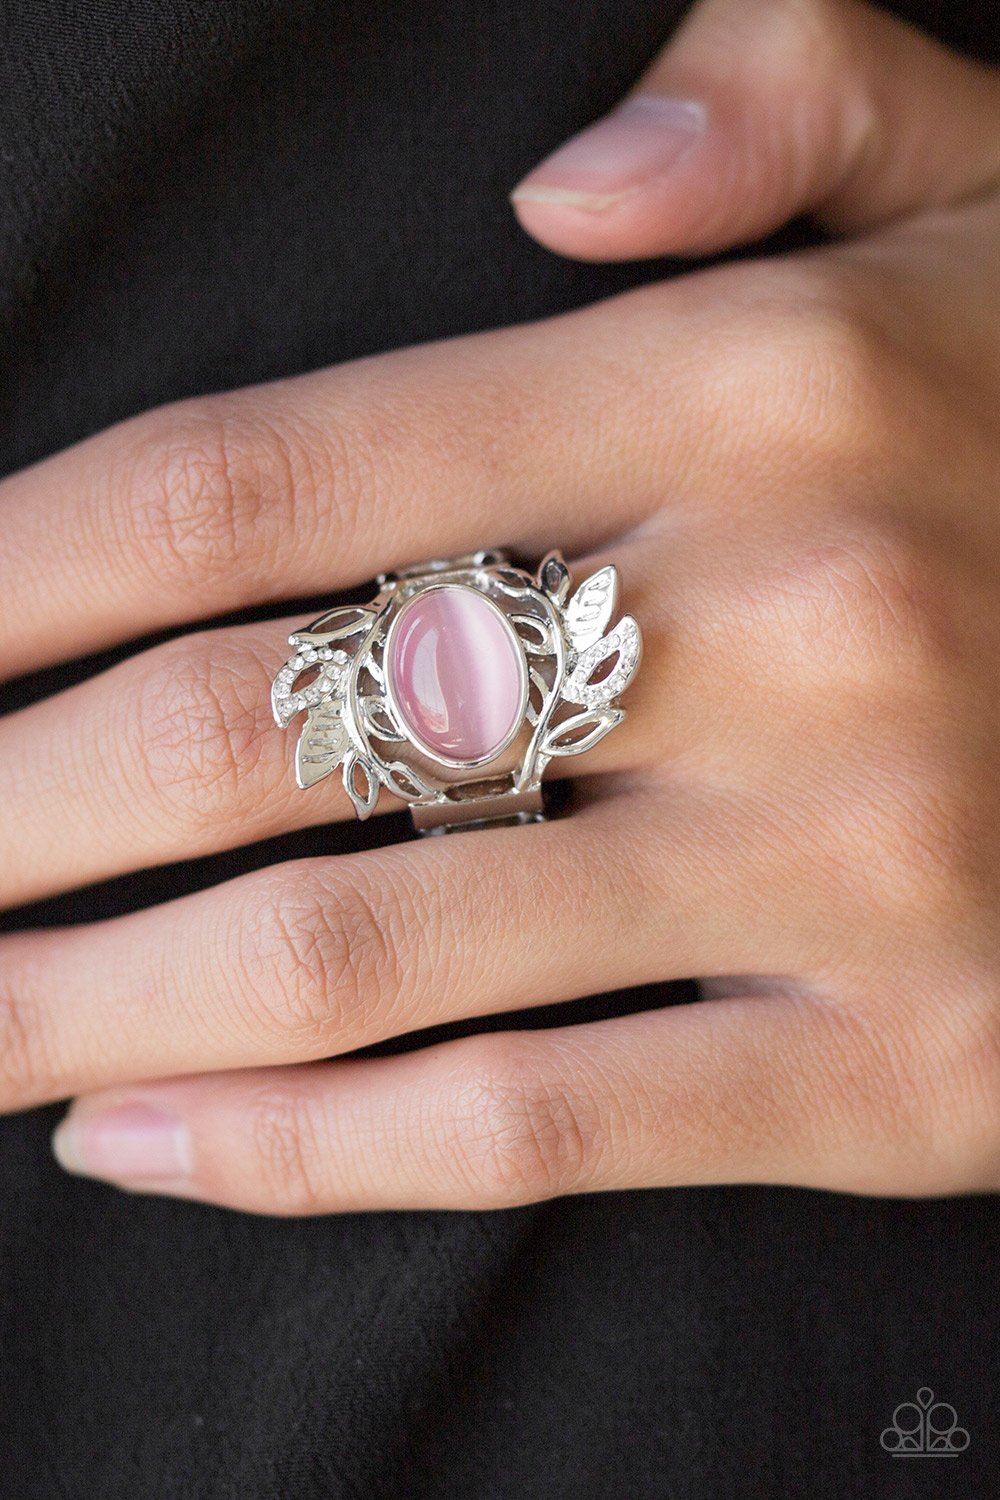 Pink Moonstone Ring by Paparazzi $5 my-bling.com